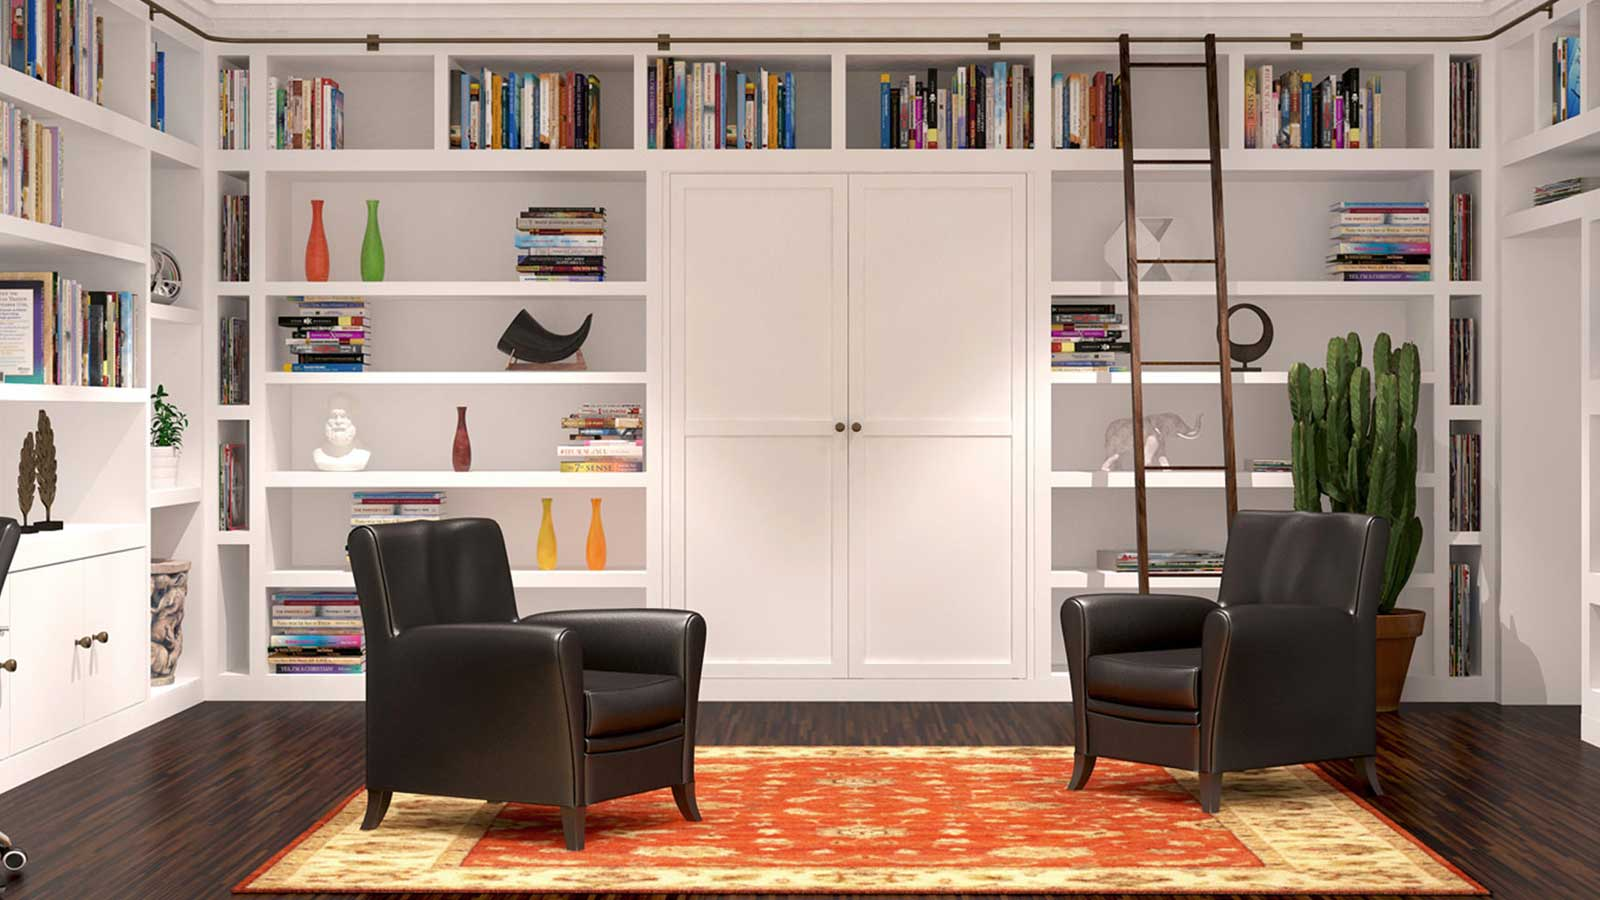 Modular Library unit in home